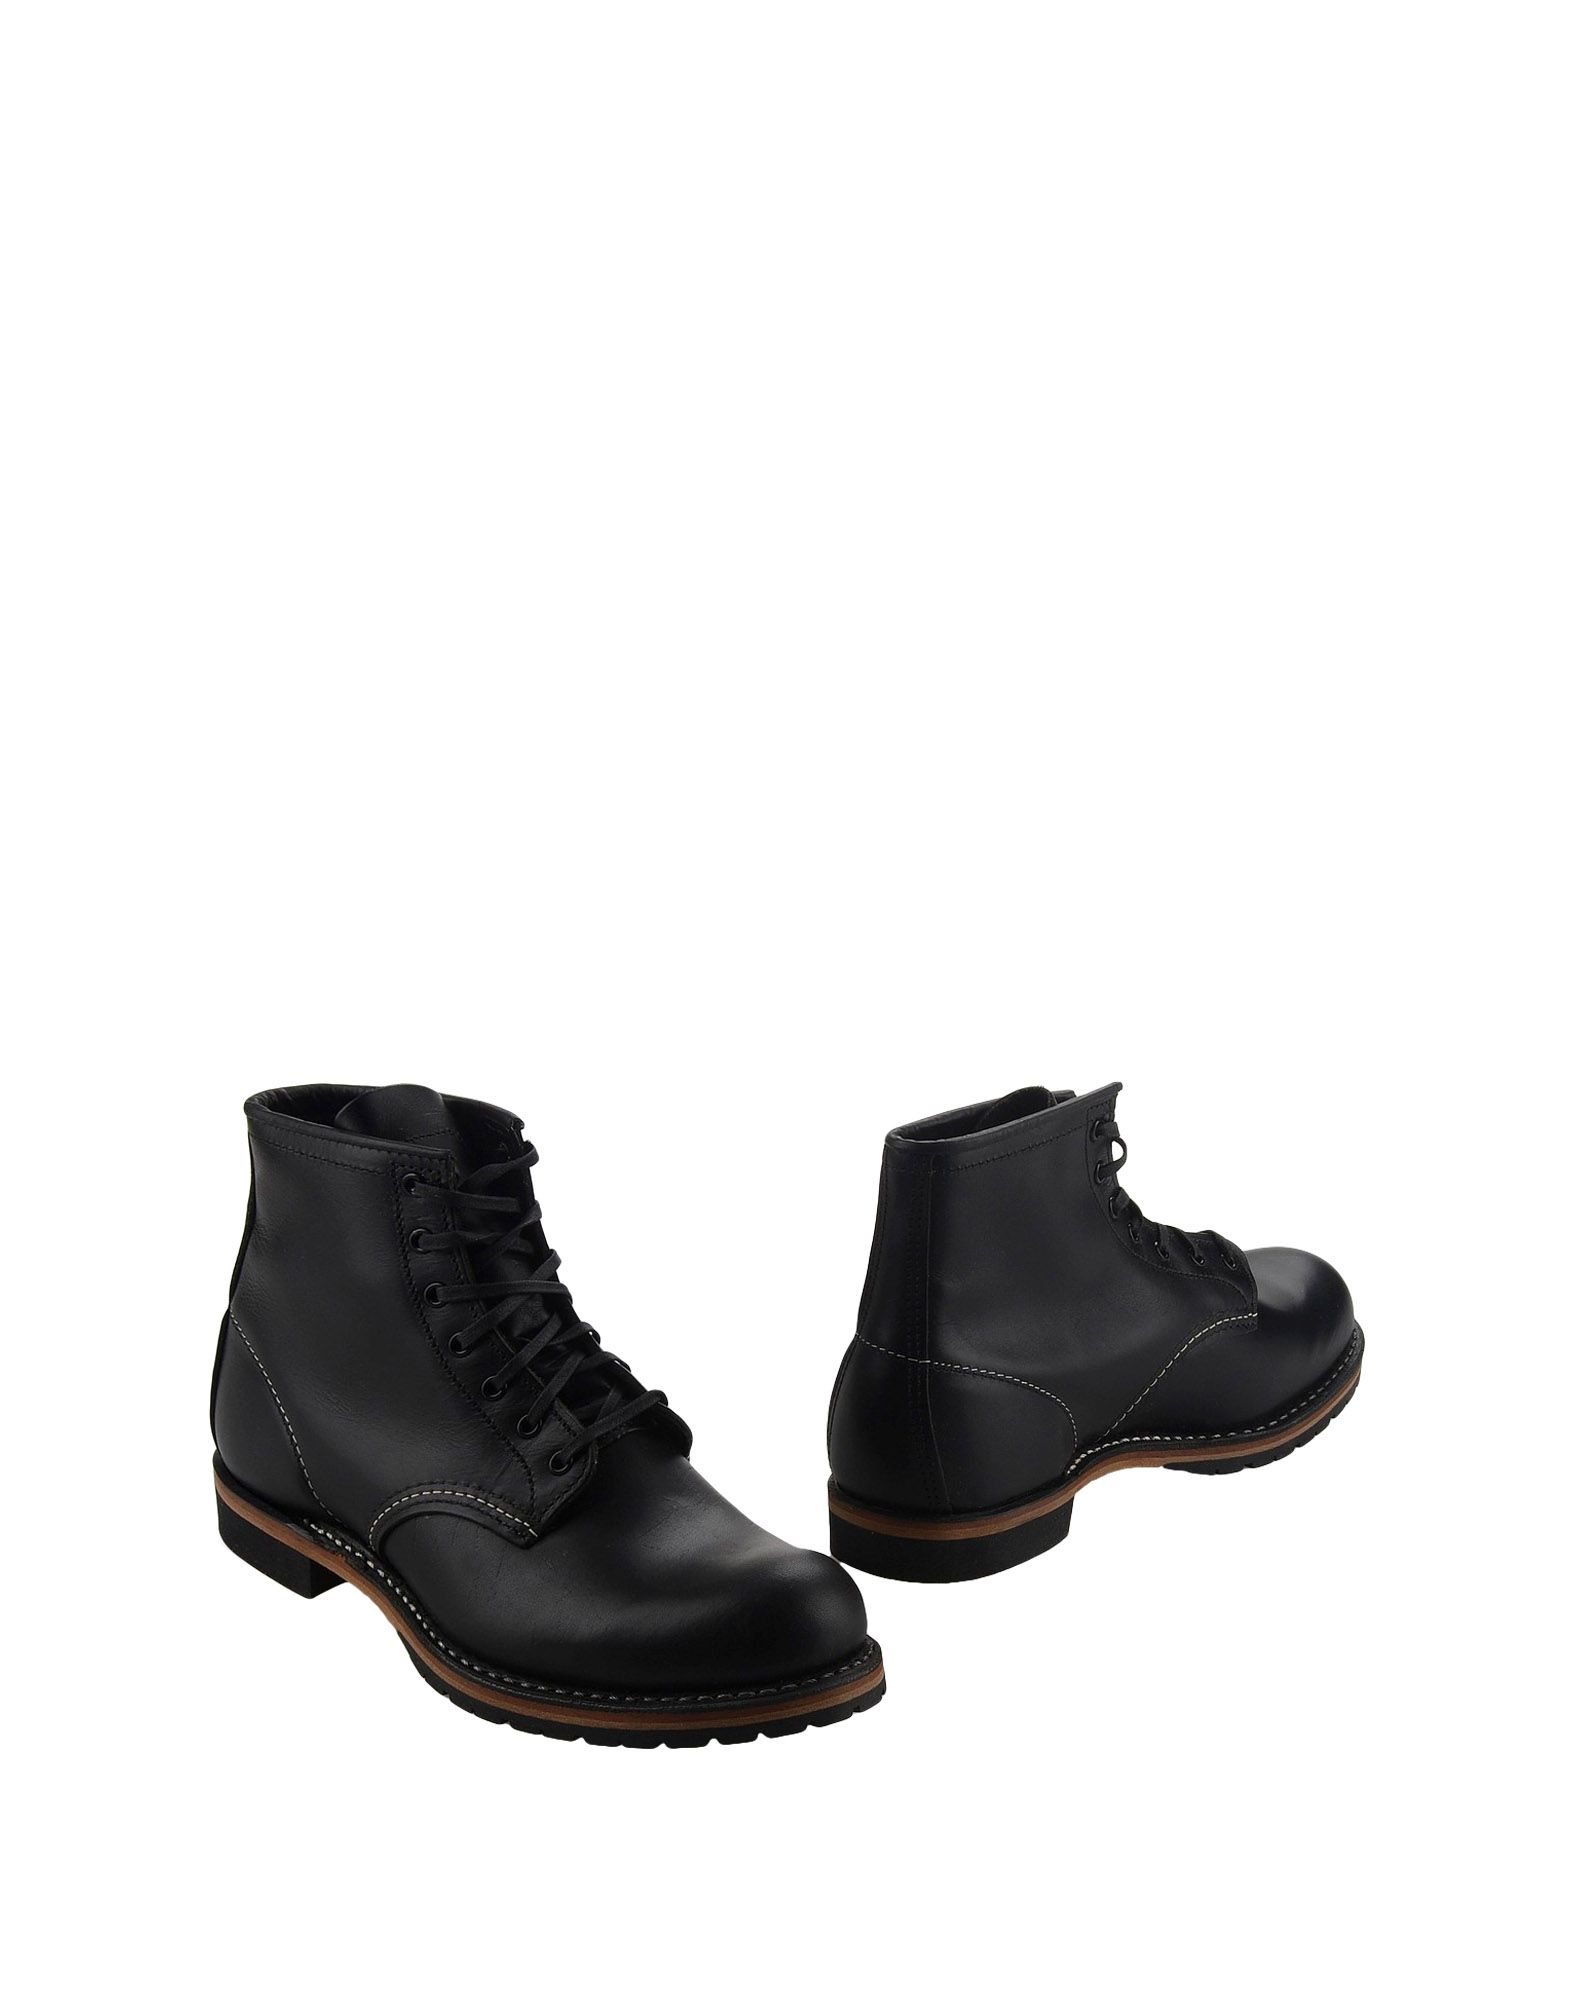 Red Wing Combat Boots In Black For Men Lyst